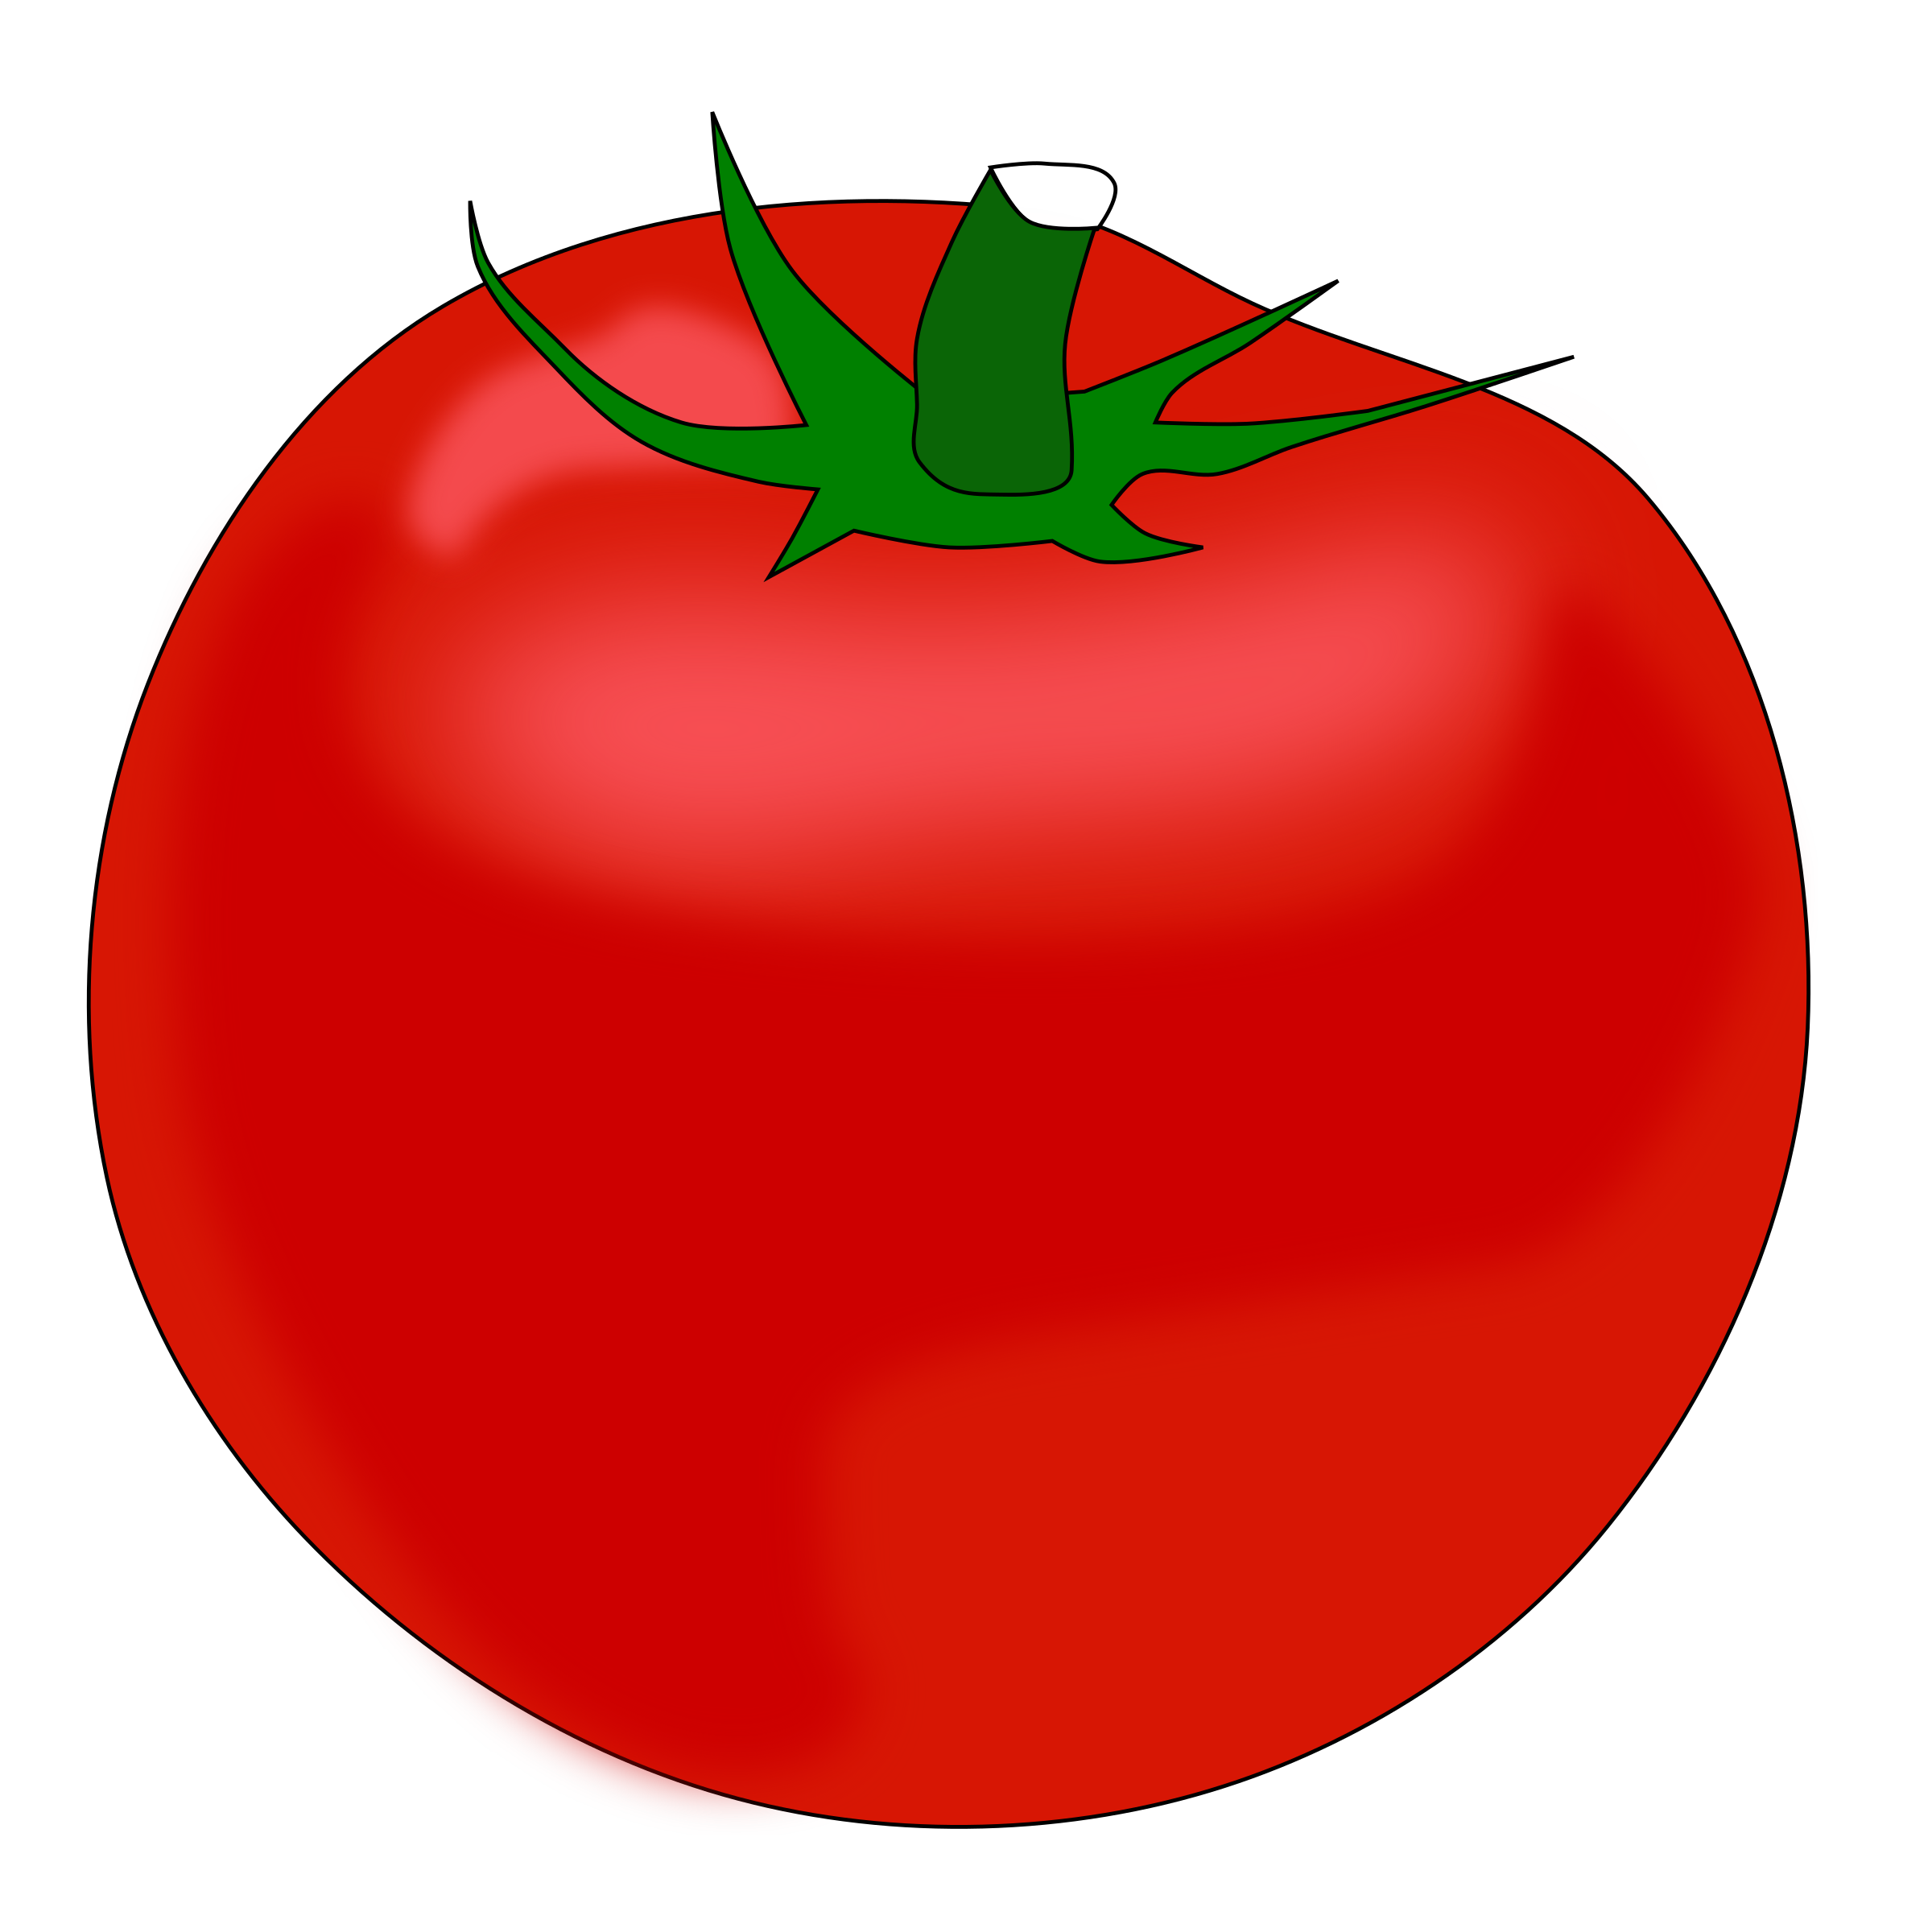 Red clipart tomato #10